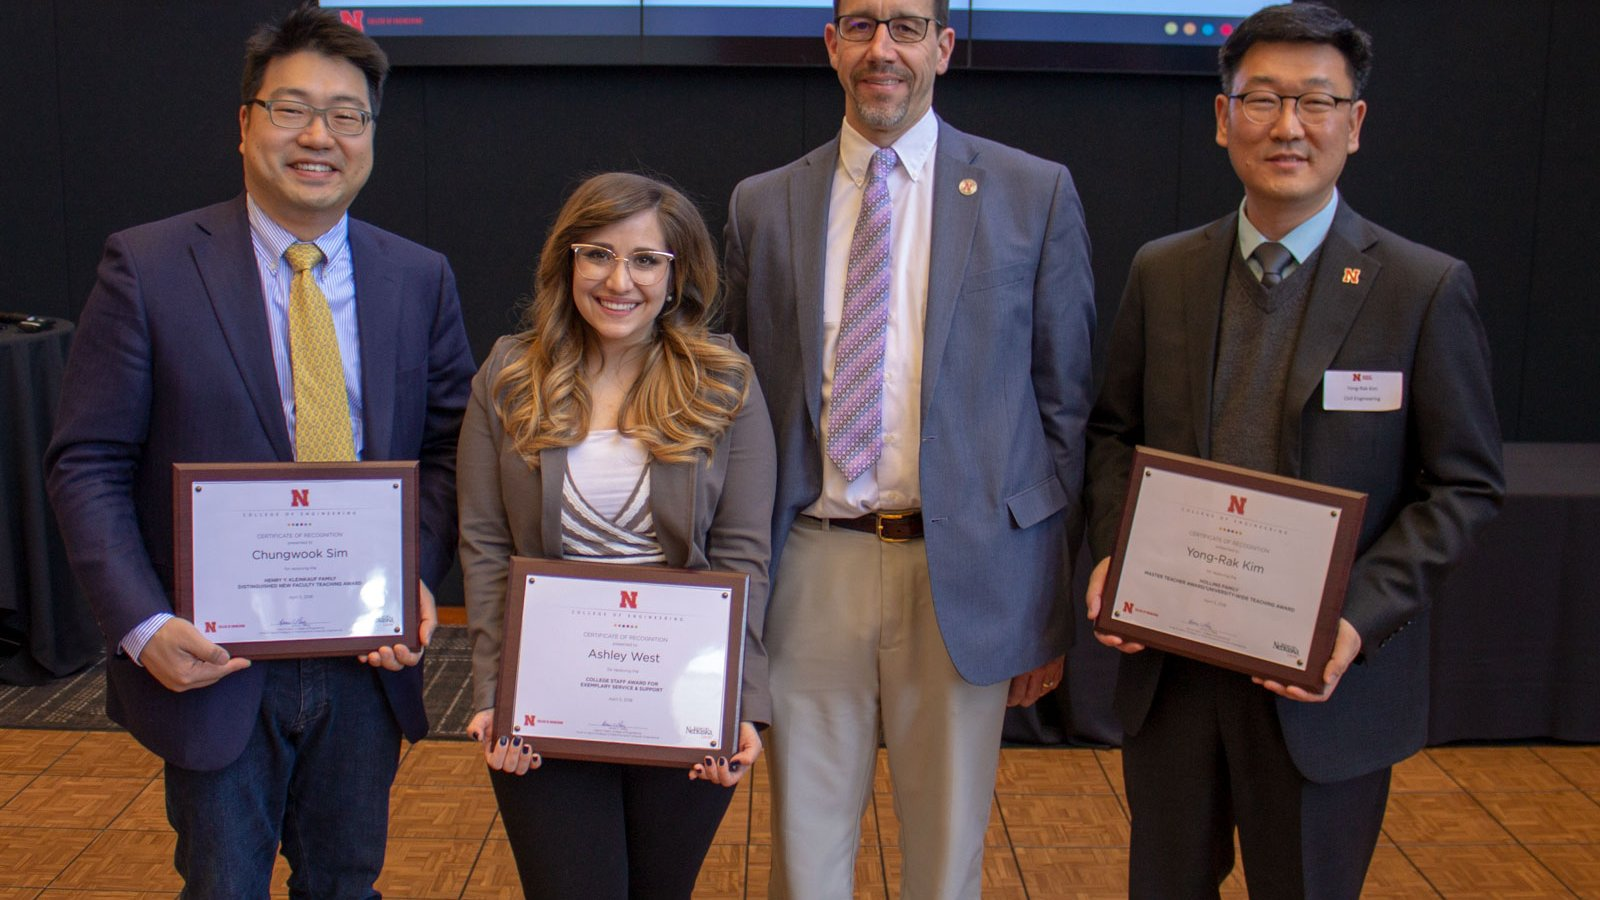 Left to right: Dr. Chungwook Sim, Ashley West, Dr. Daniel Linzell and Dr. Yong-Rak Kim. Not pictured: Dr. Libby Jones and Dr. John Stansbury